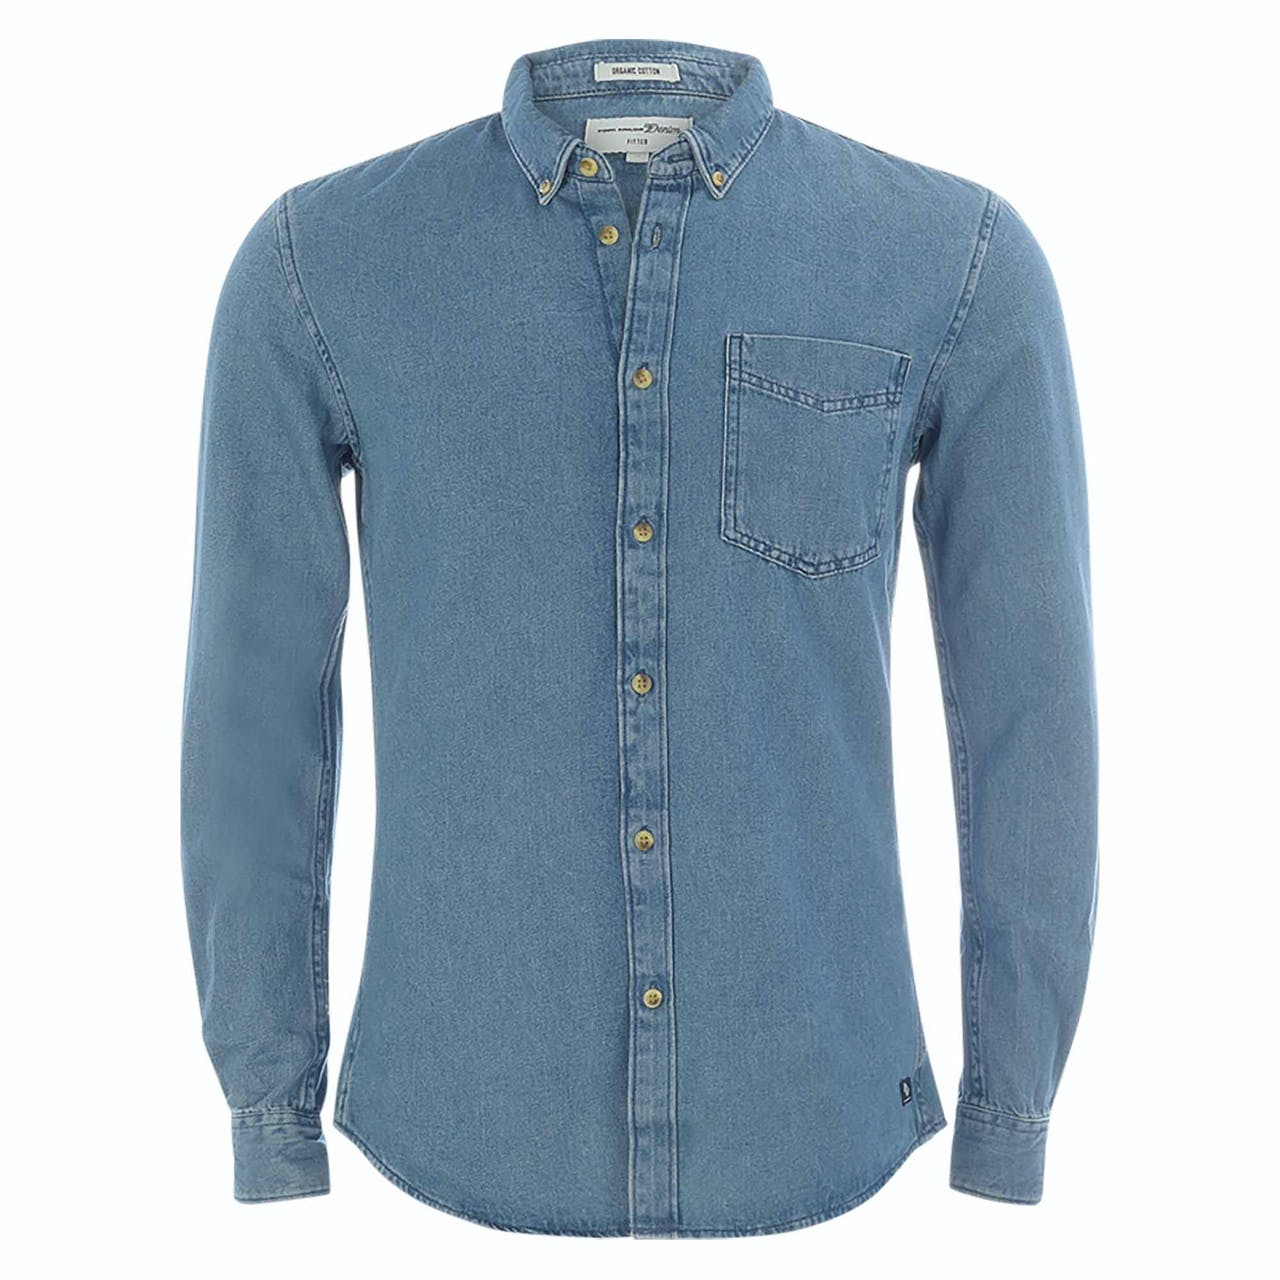 Jeanshemd - Fitted - Button-Down